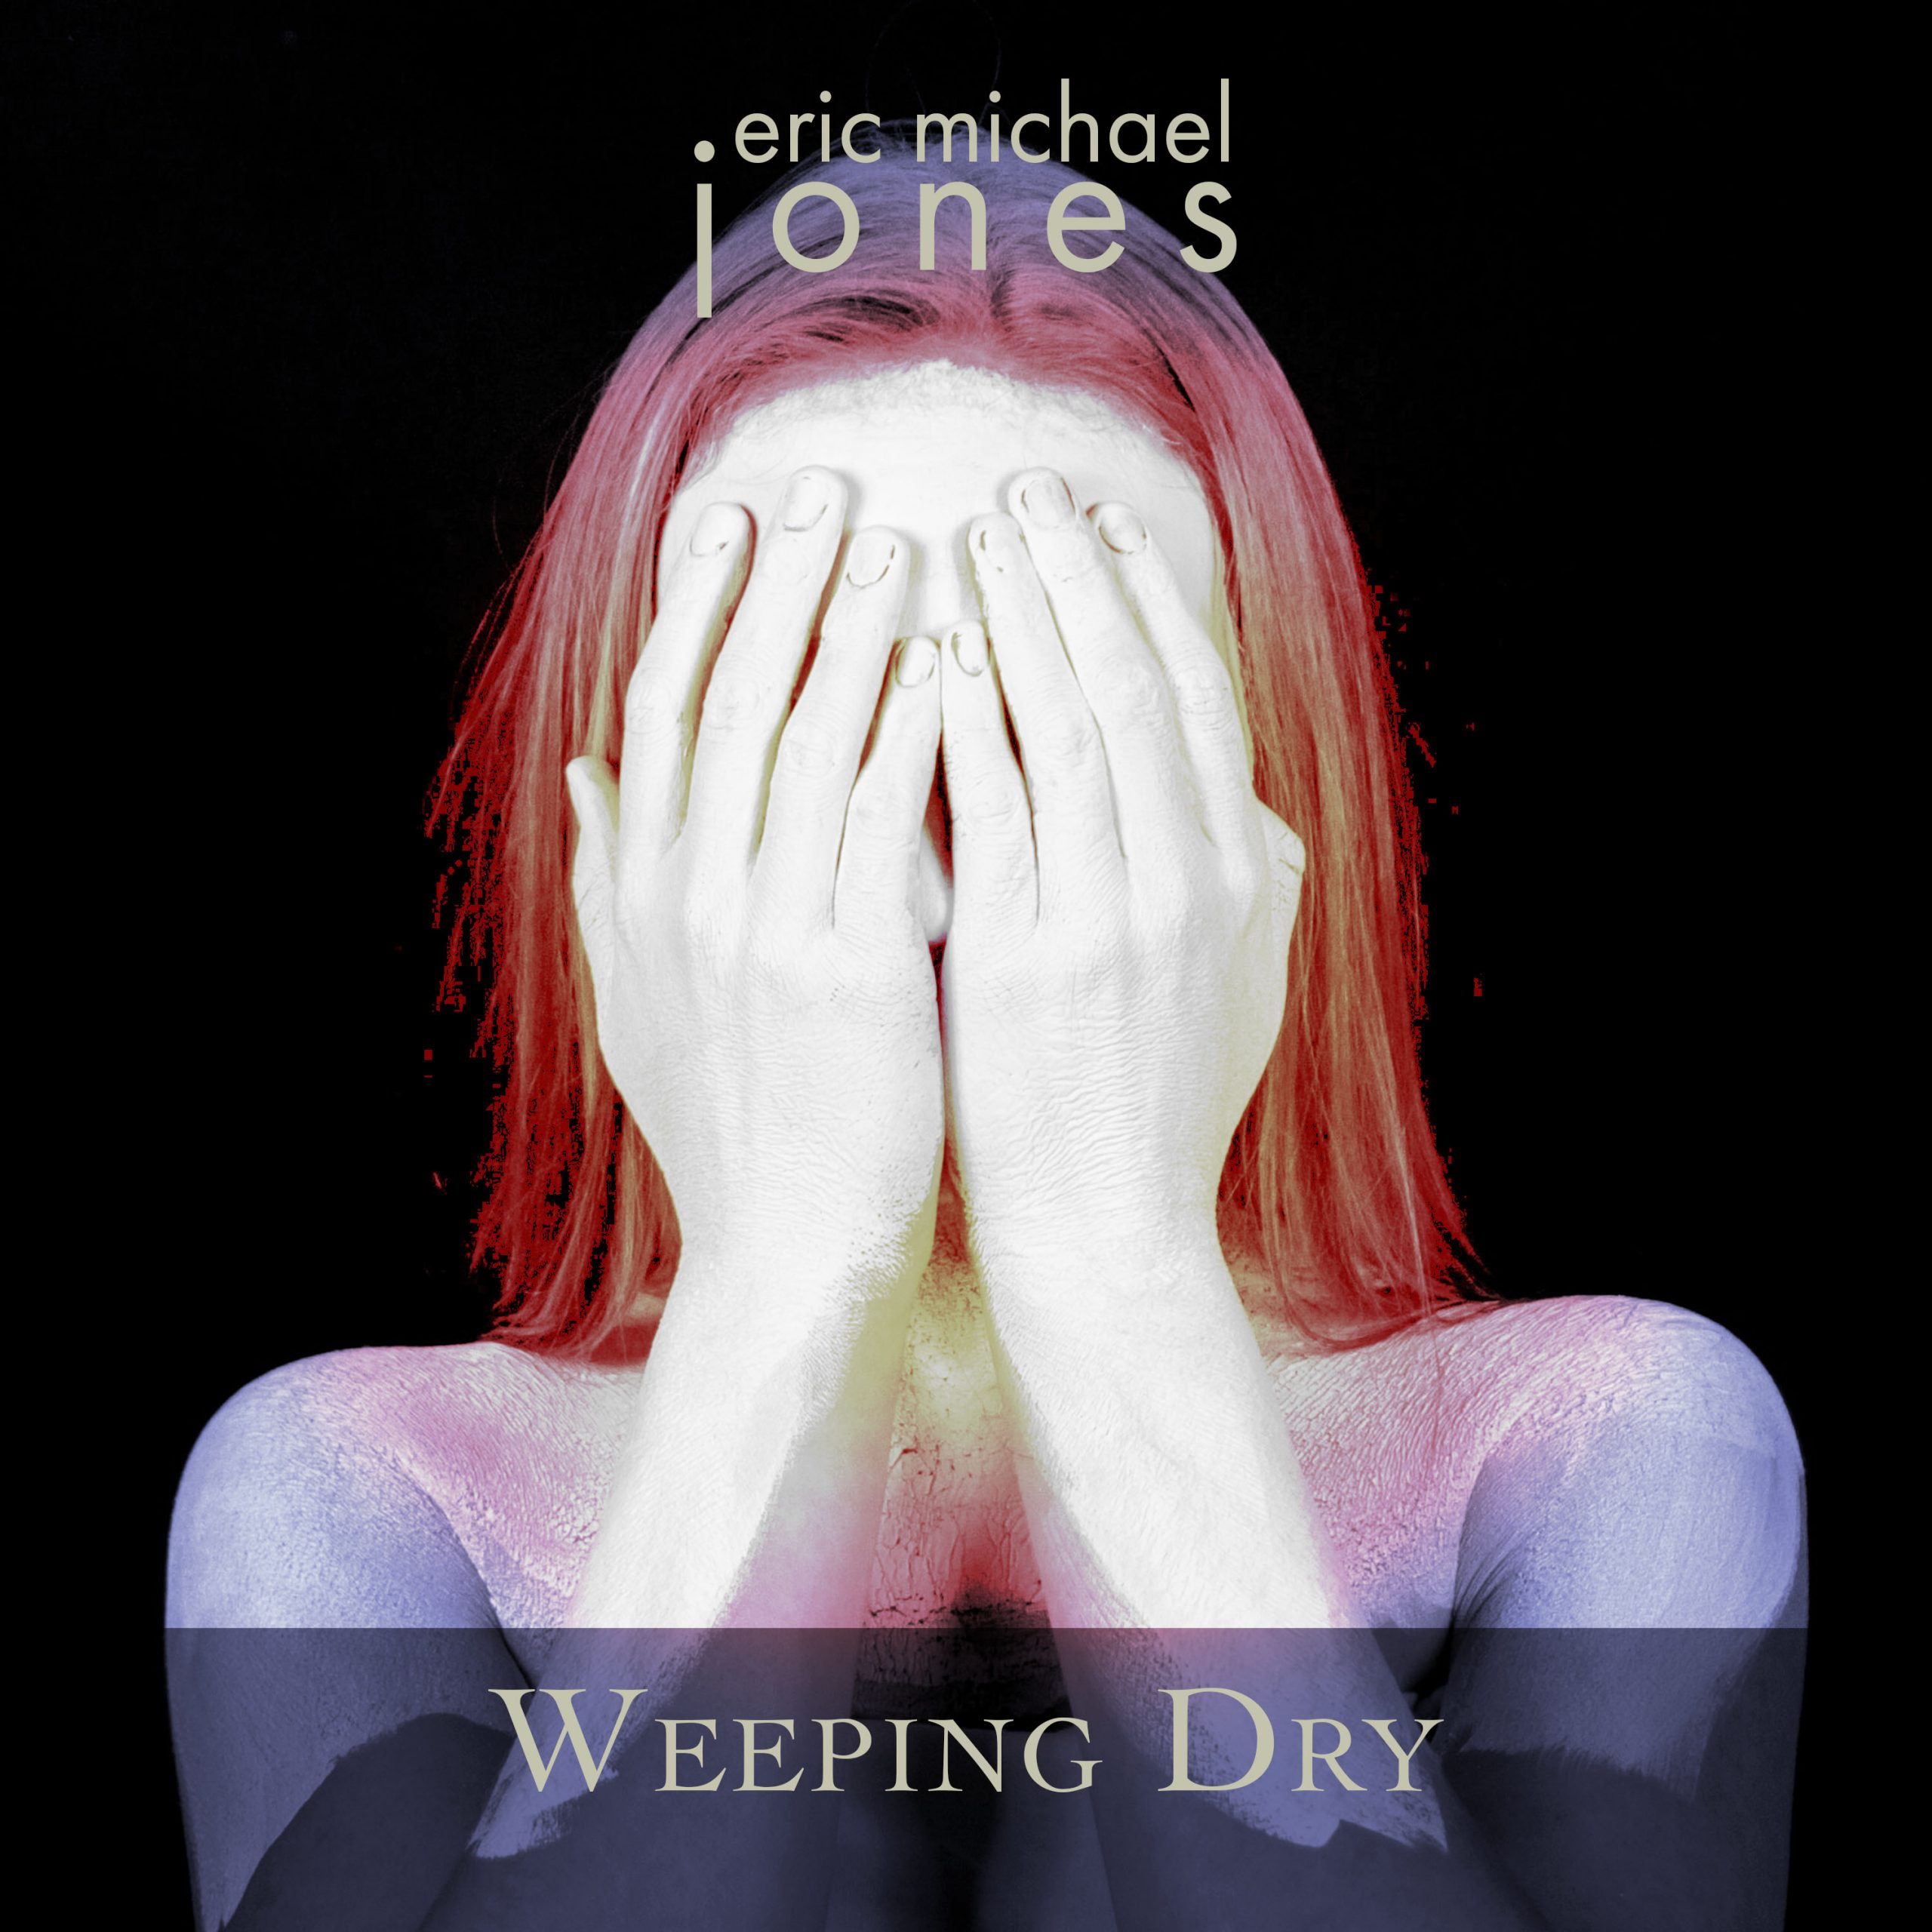 Cover art for Weeping Dry, showing a woman covering her face with her hands